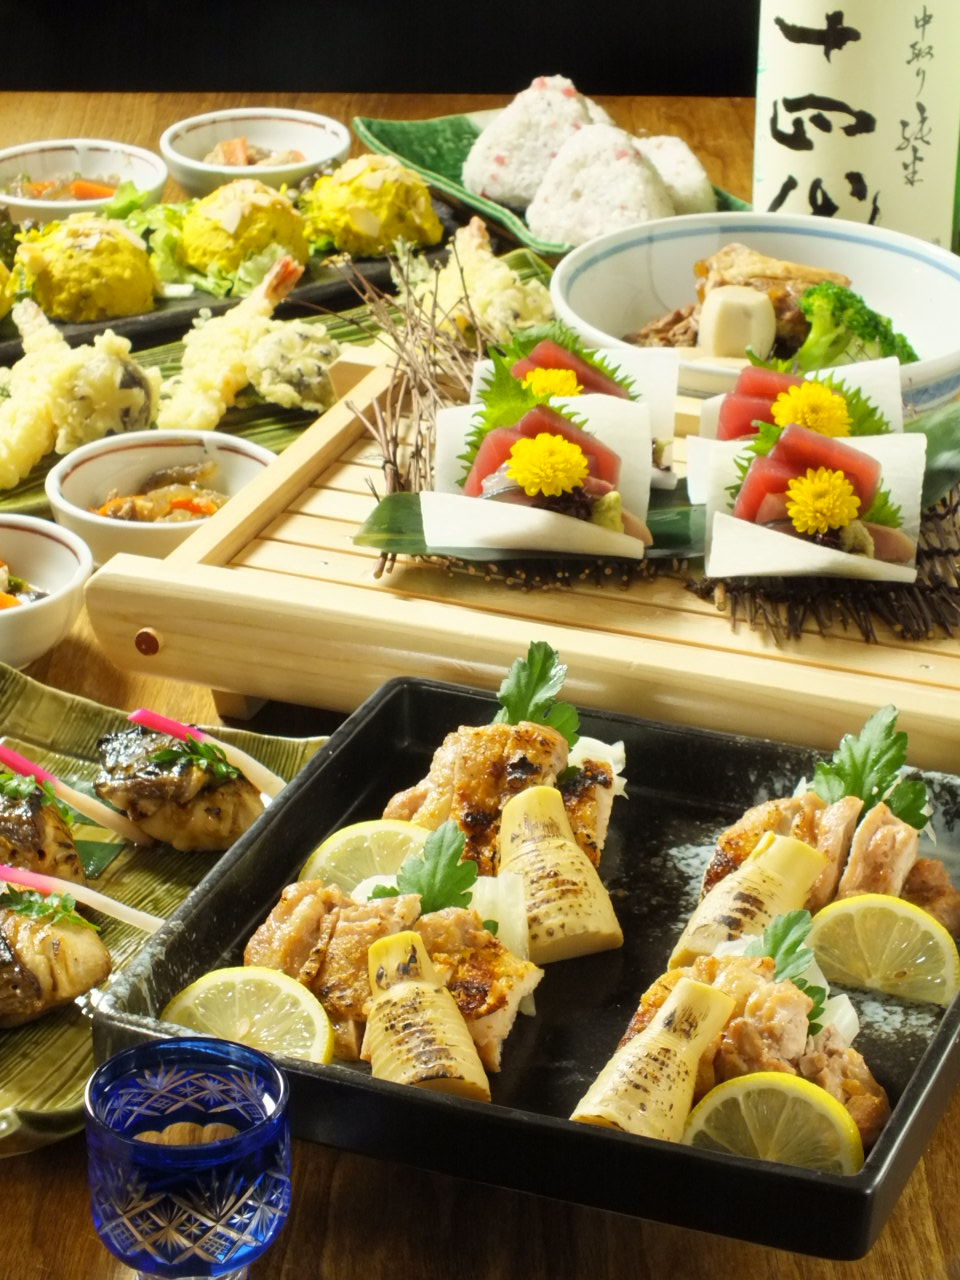 Chicken grill course&Free drink for 2 hours ¥5500(tax included)